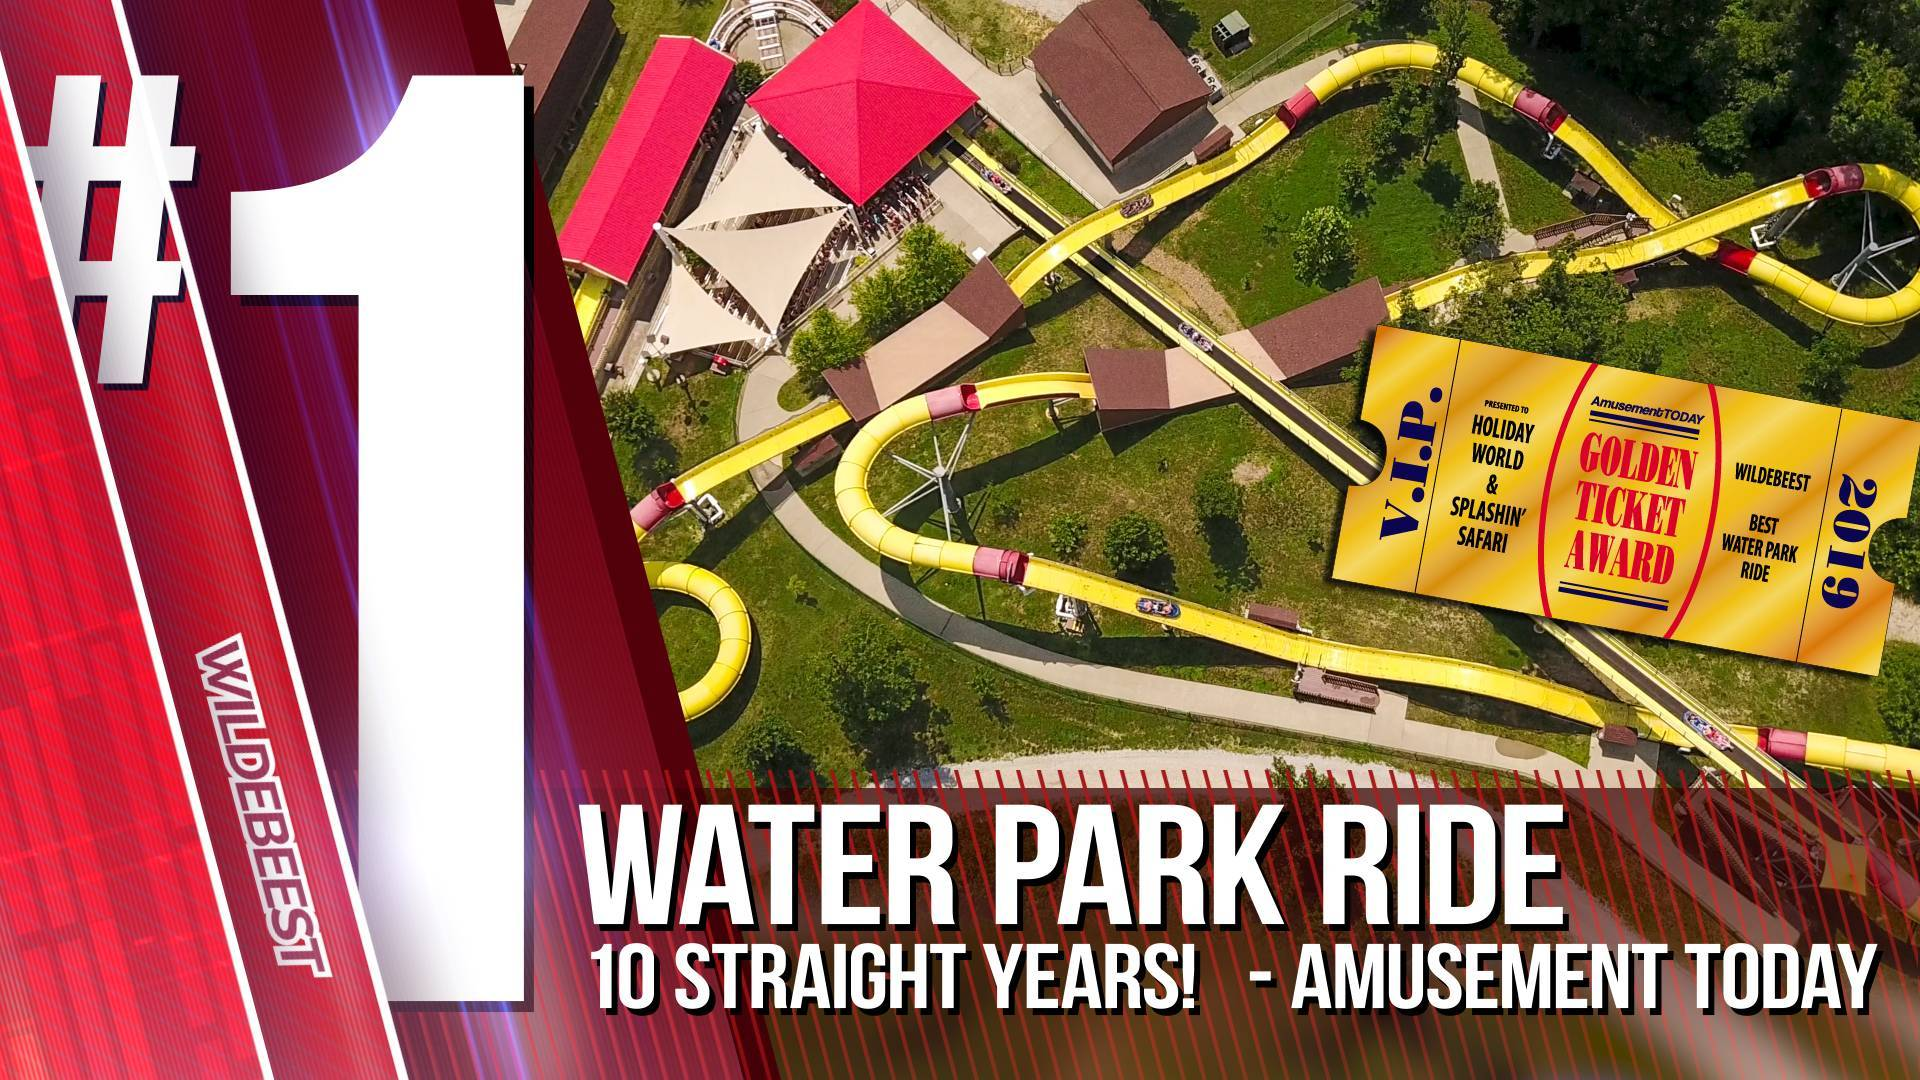 Wildebeest: #1 Water Park Ride for 10 Straight Years - Amusement Today